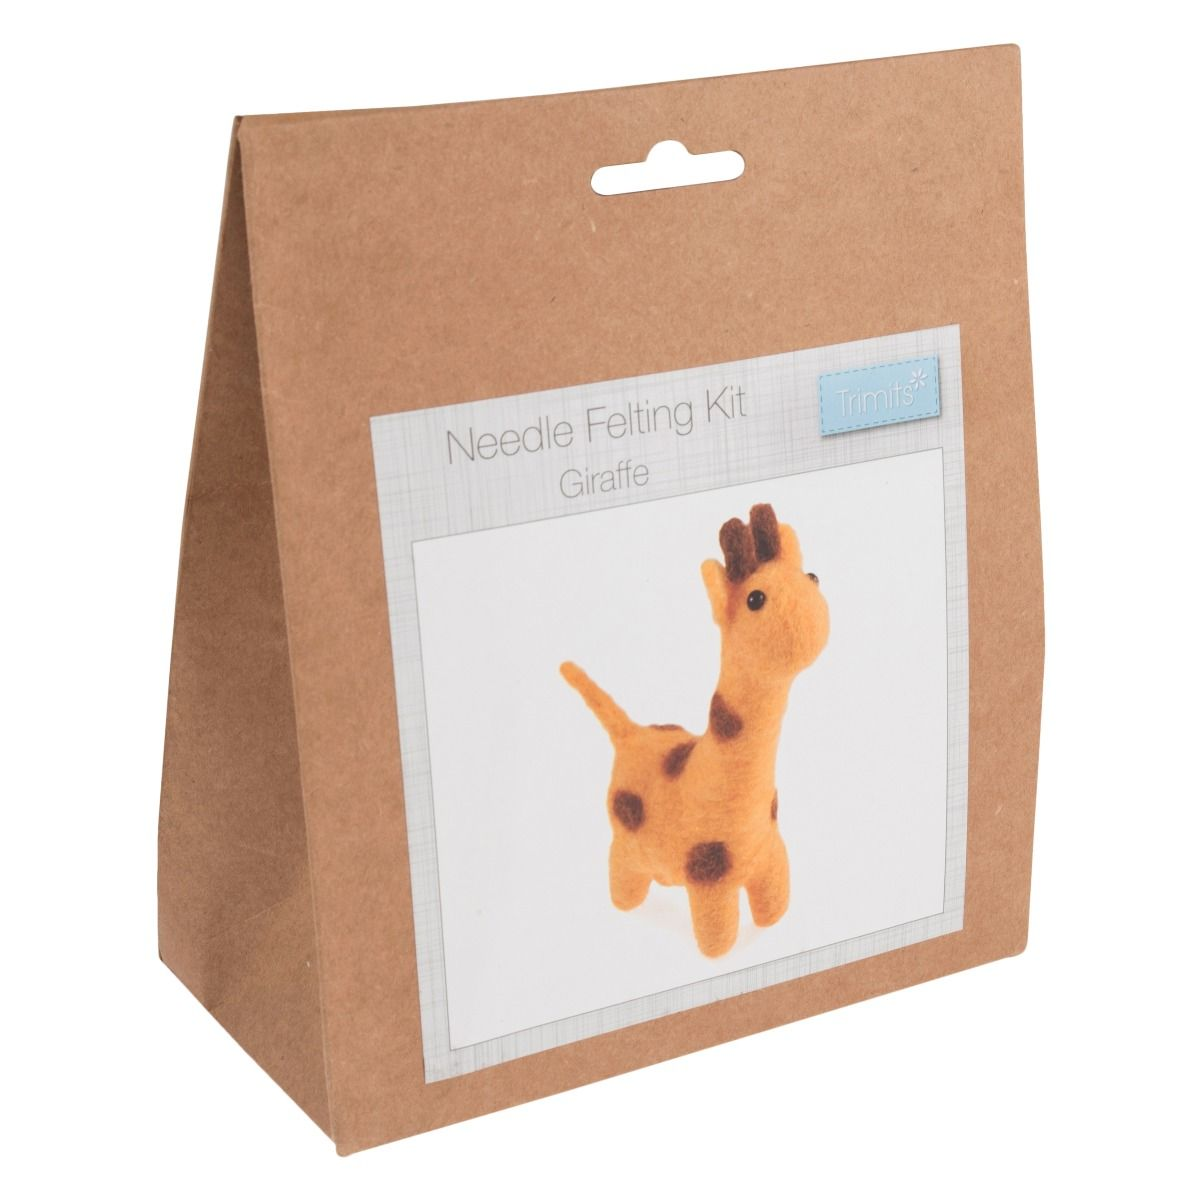 Trimits Needle Felting Kit: Giraffe